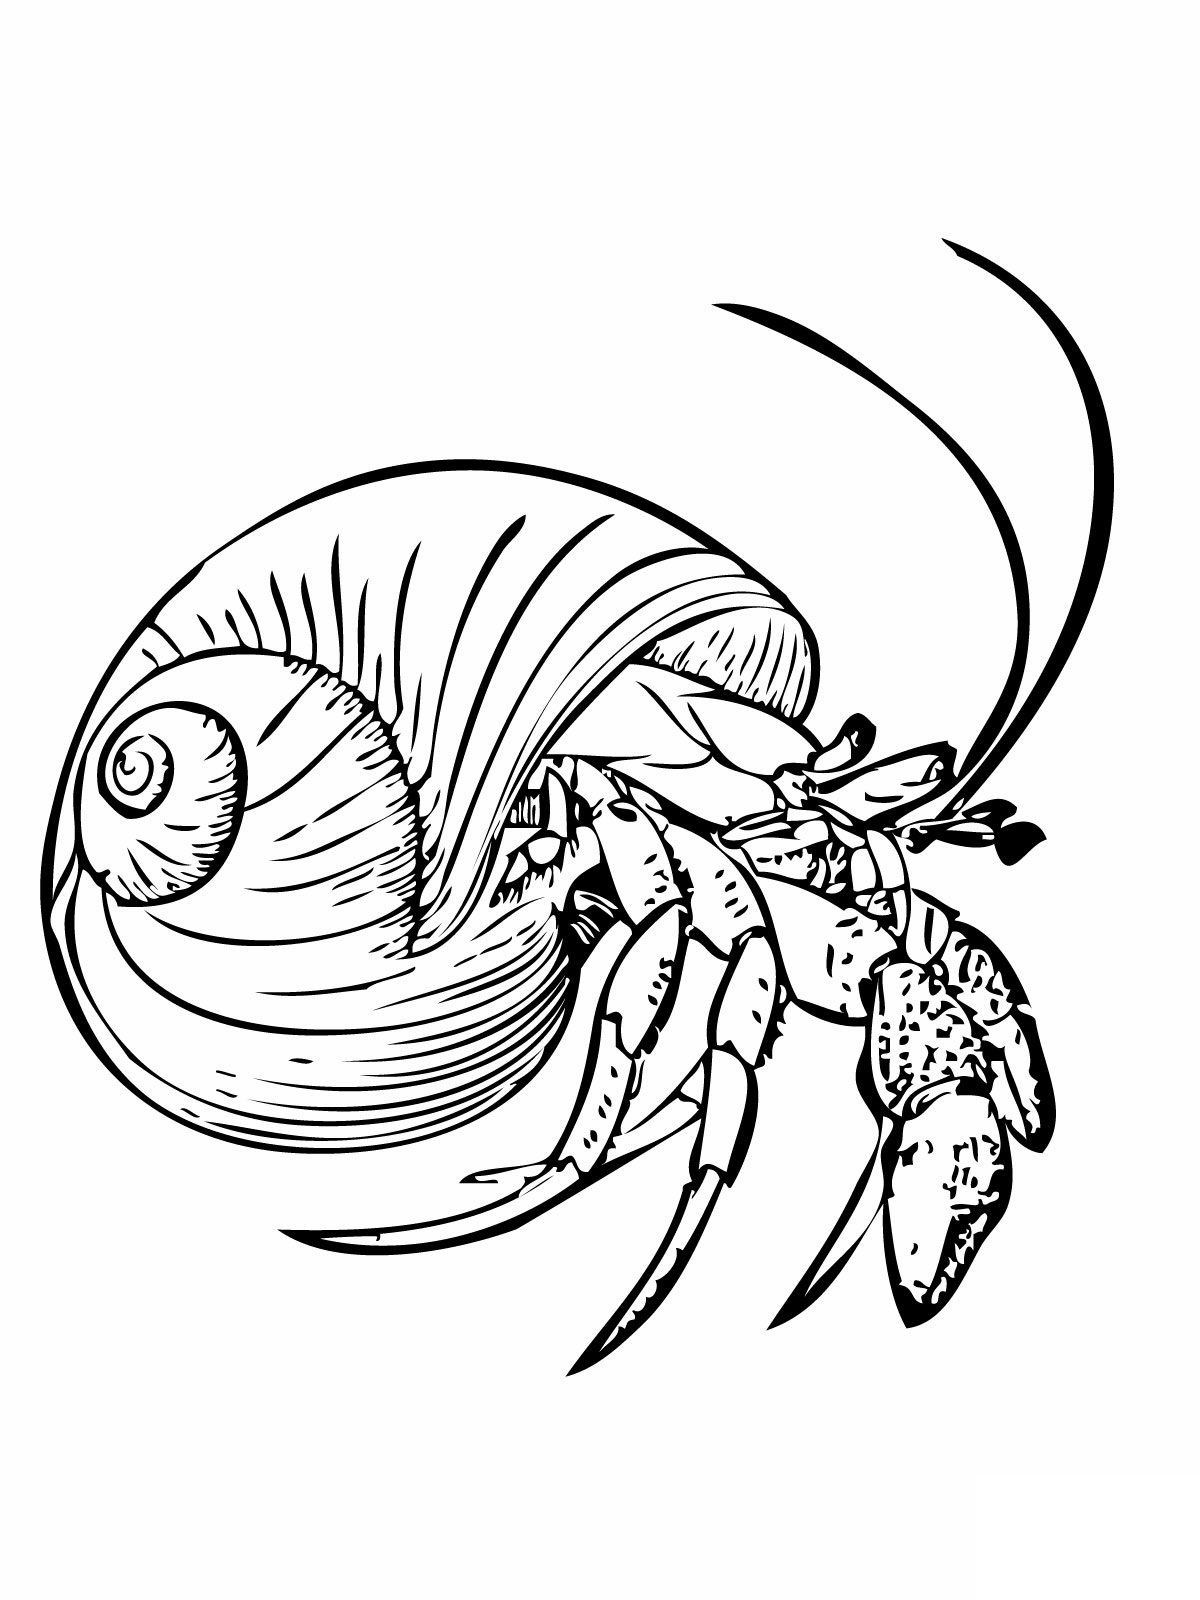 Free Printable Hermit Crab Coloring Pages For Kids In 2020 Animal Coloring Pages Coloring Pages For Kids Coloring Pages